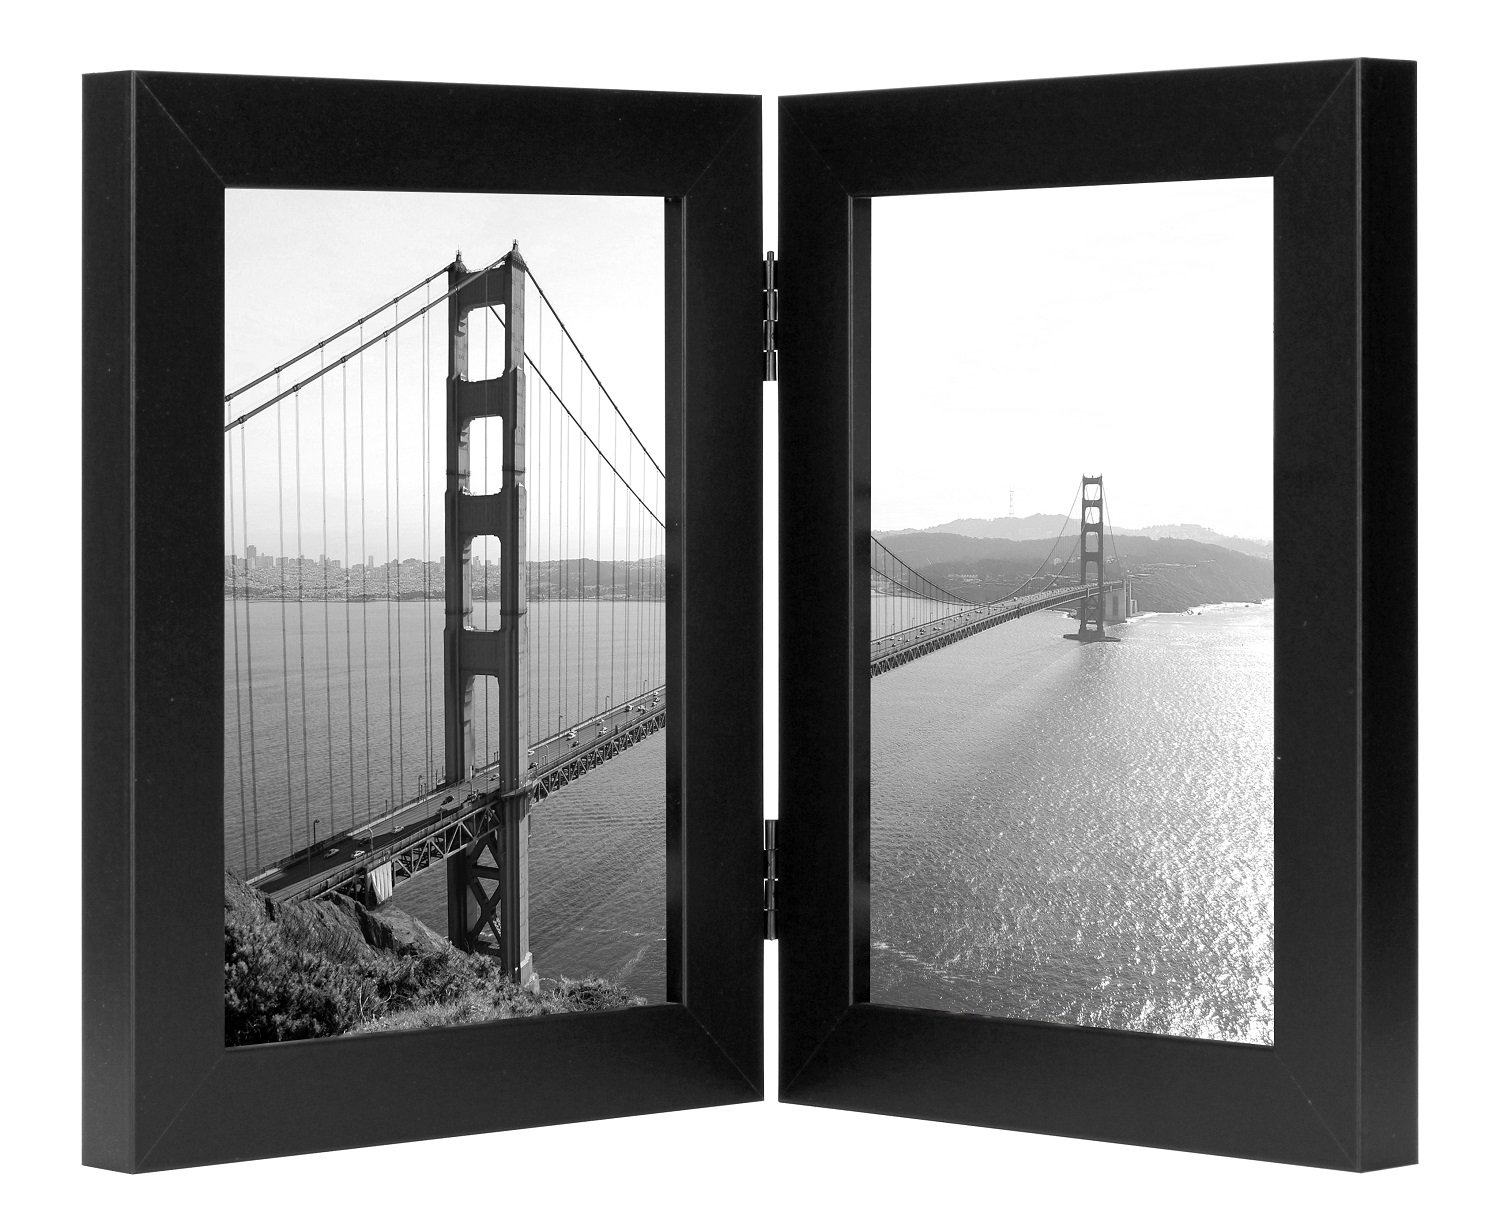 Frametory, 5x7 Inch Hinged Picture Frame - Displays Two 5x7 Inch Pictures, Stands Vertically on Desktop or Table Top (5x7 Double, Black) - DESIGN: Black hinged frame with sturdy hinges to provide support. Elegantly displays two 5x7 inch pictures side-by-side. The frame is made with a thick 2mm glass front that can be removed and polished. USE AND DISPLAY: Frame set holds two photos side by side. Stands on a desk or tabletop, perfect for a home or office. Excellent way to display memories, important reminders or collage photos. QUALITY: Sturdy frame made to last. Clear glass front preserves and protects your photos. The frame is made from high quality MDF and polished so the corners are not visible. - picture-frames, bedroom-decor, bedroom - 71X0T7vyhwL -